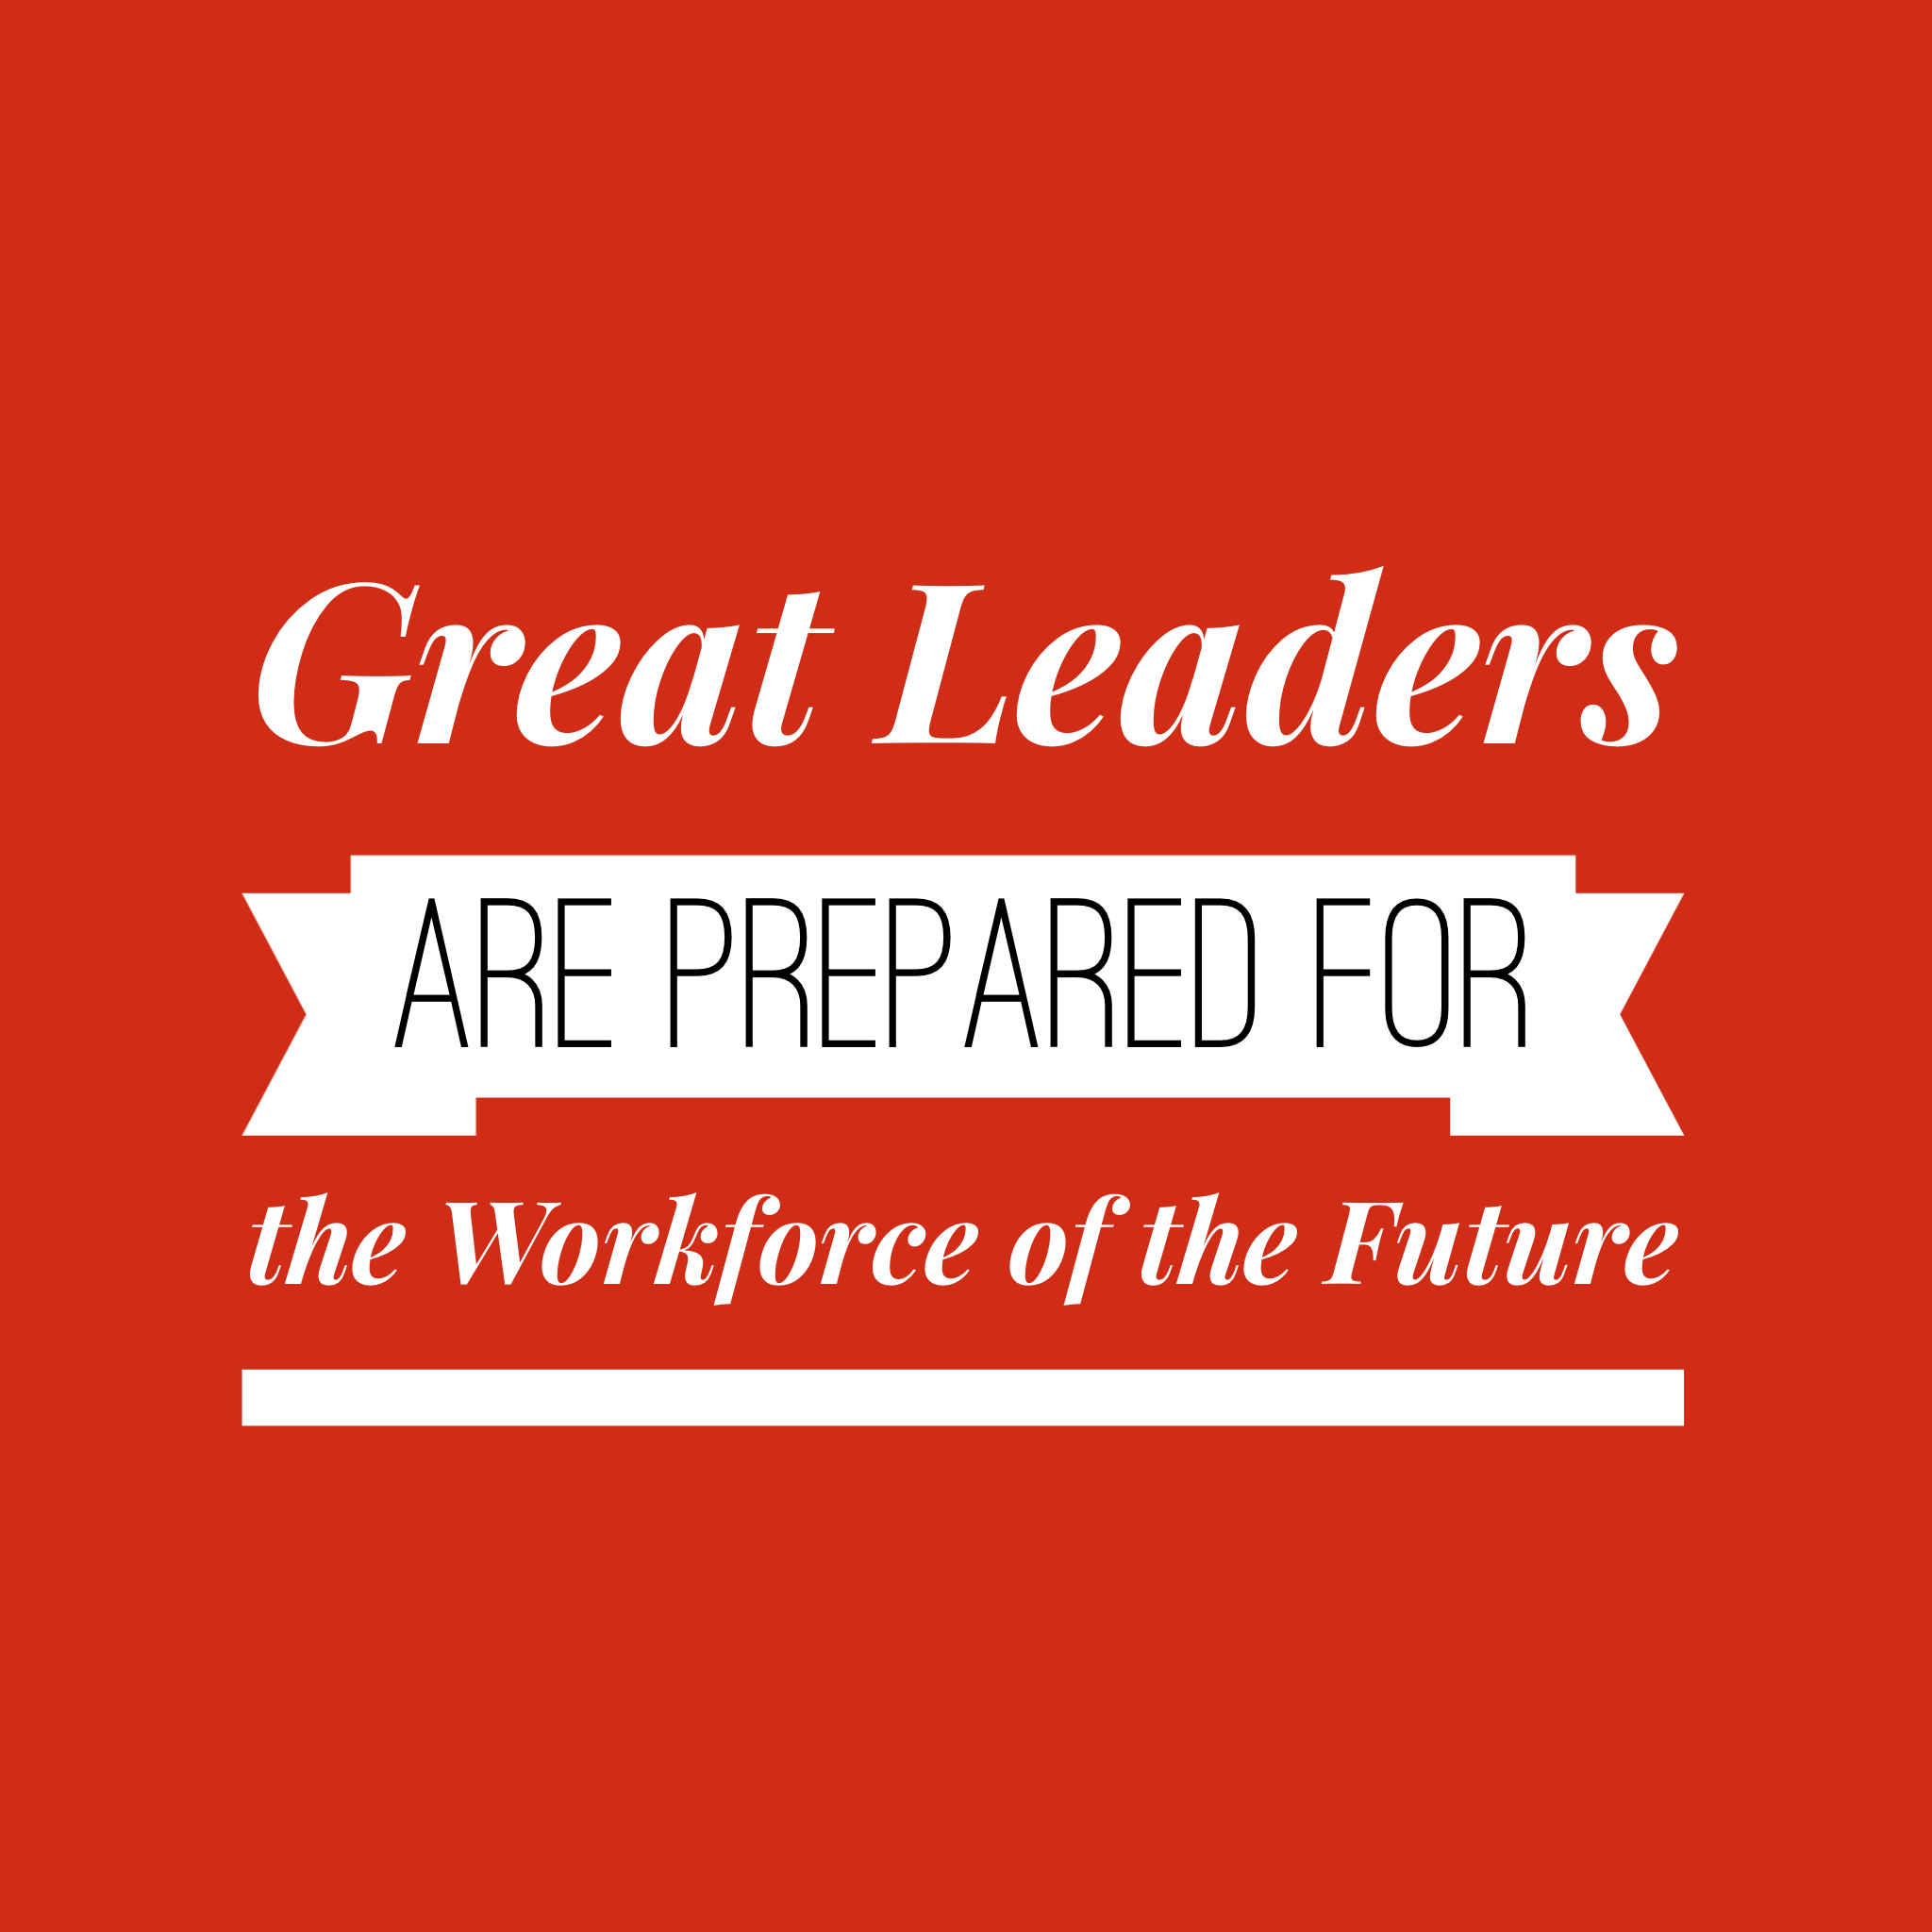 Amazing Leadership: Great Leaders Are Prepared For The Workforce Of The Future